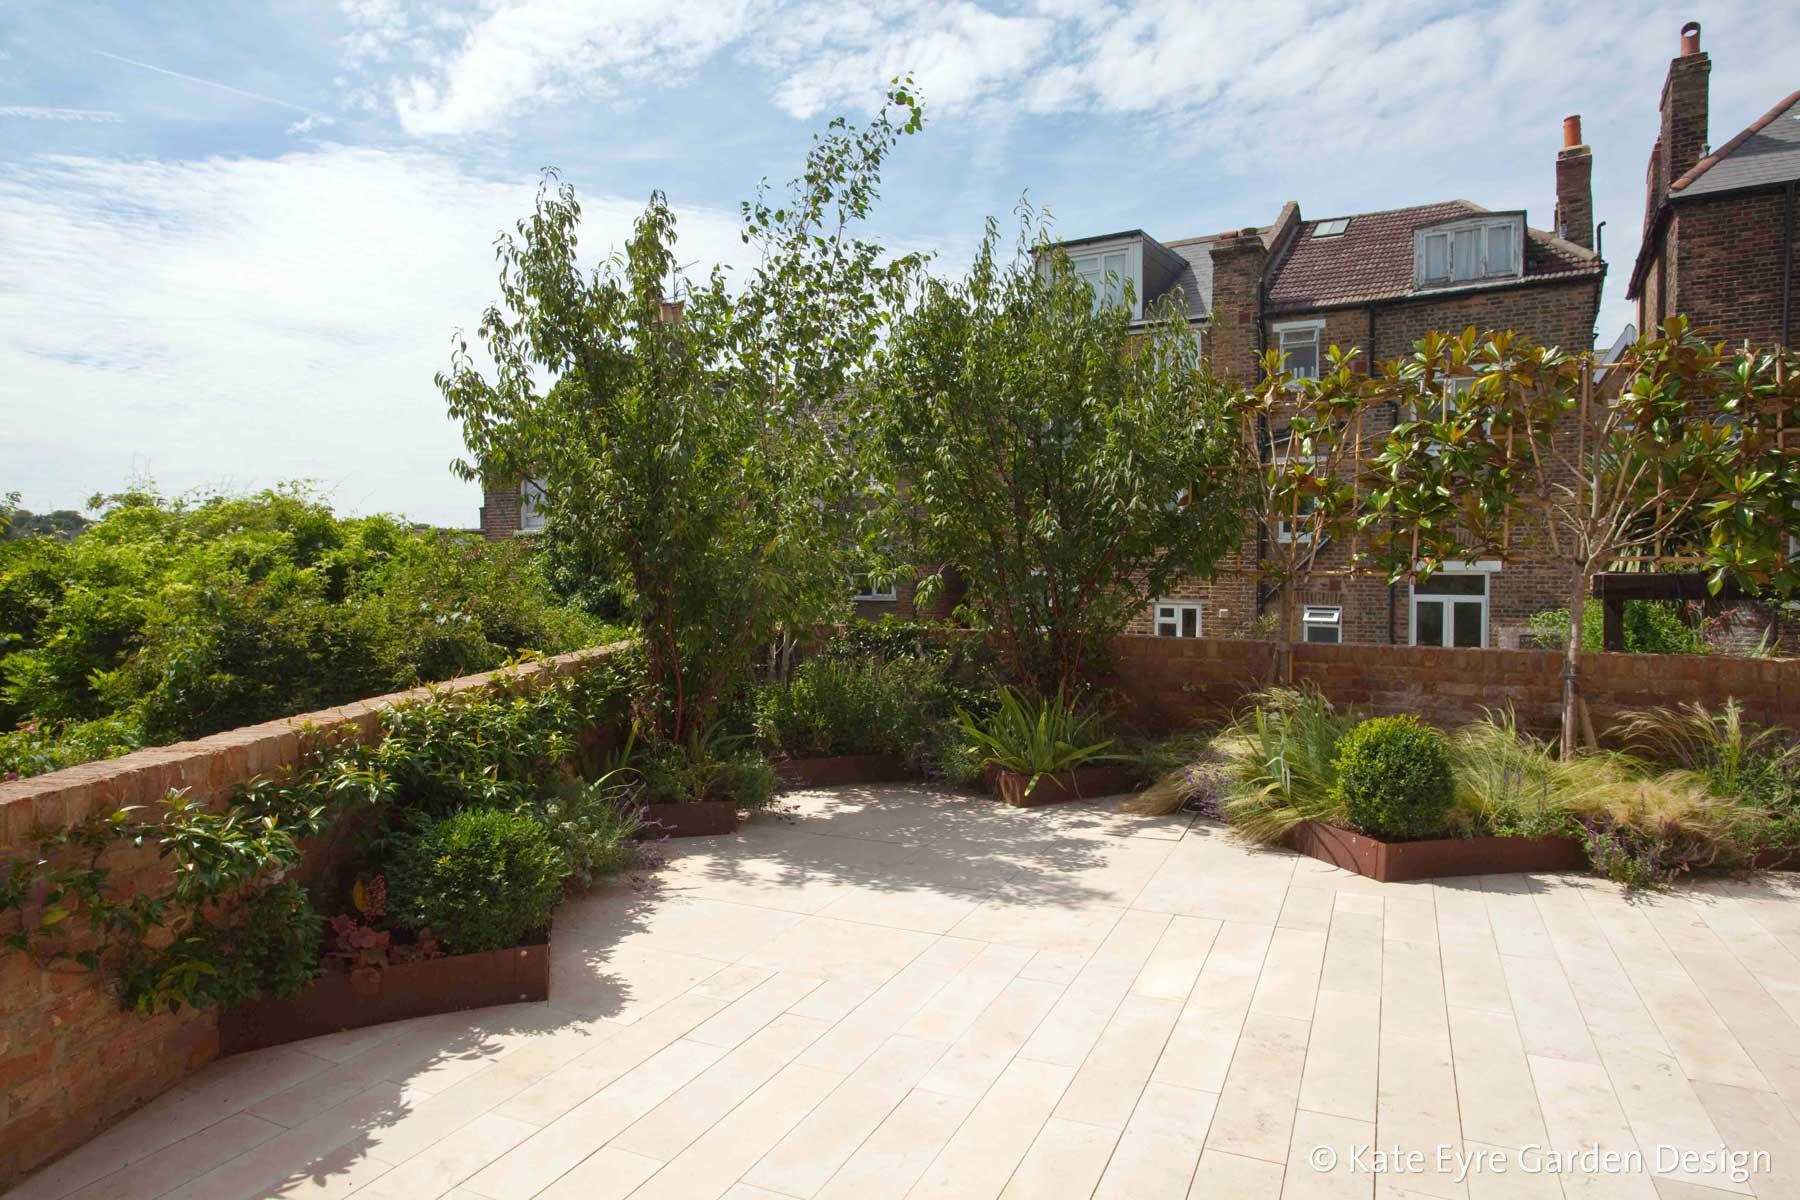 Garden Design in Crystal Palace, South-East London